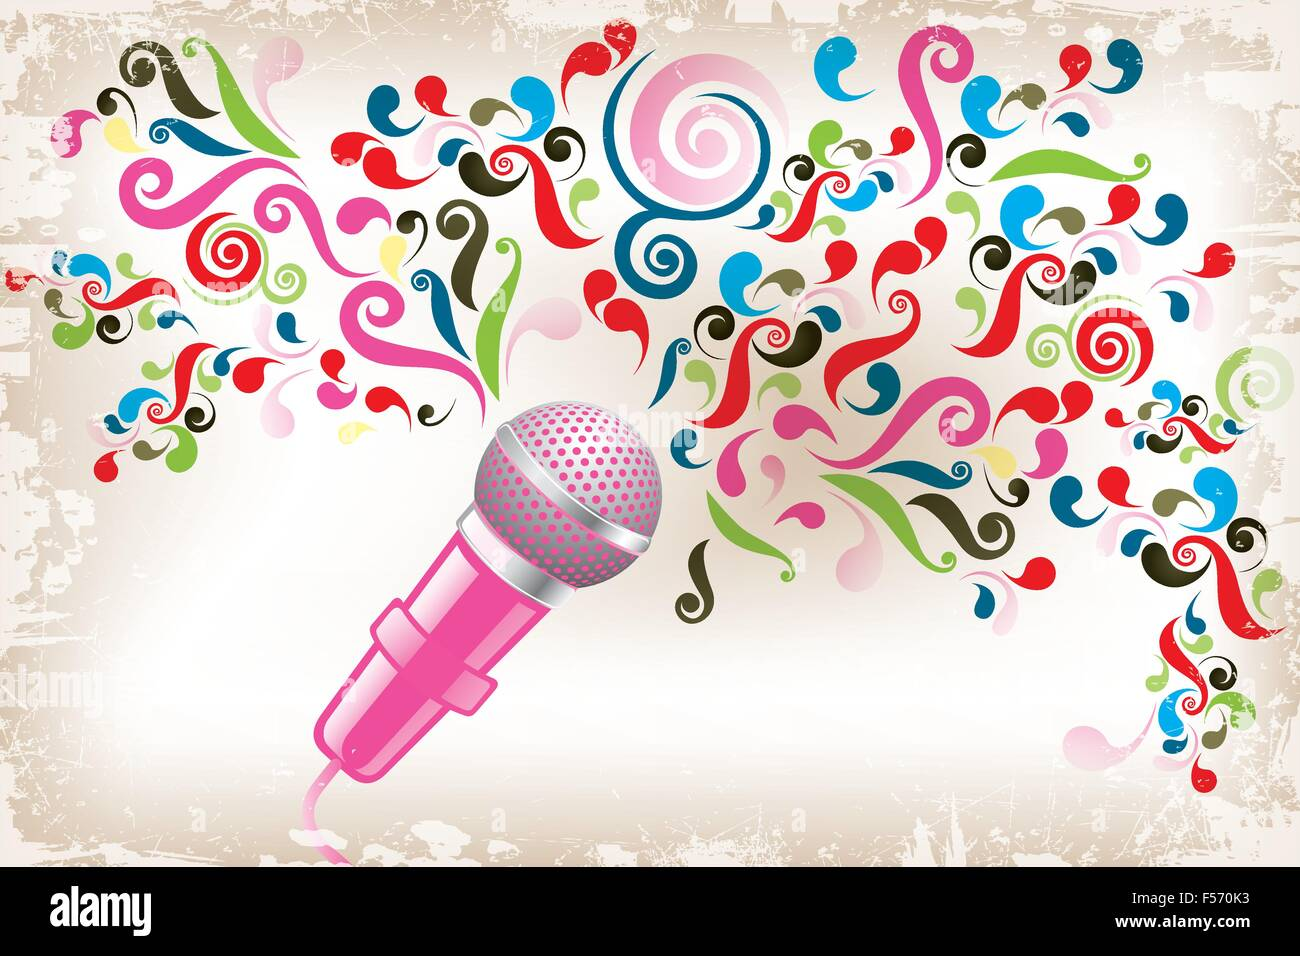 Art poster of creative voice - eps10 vector illustration shows microphone with colorful swirls as creative voice - Stock Image